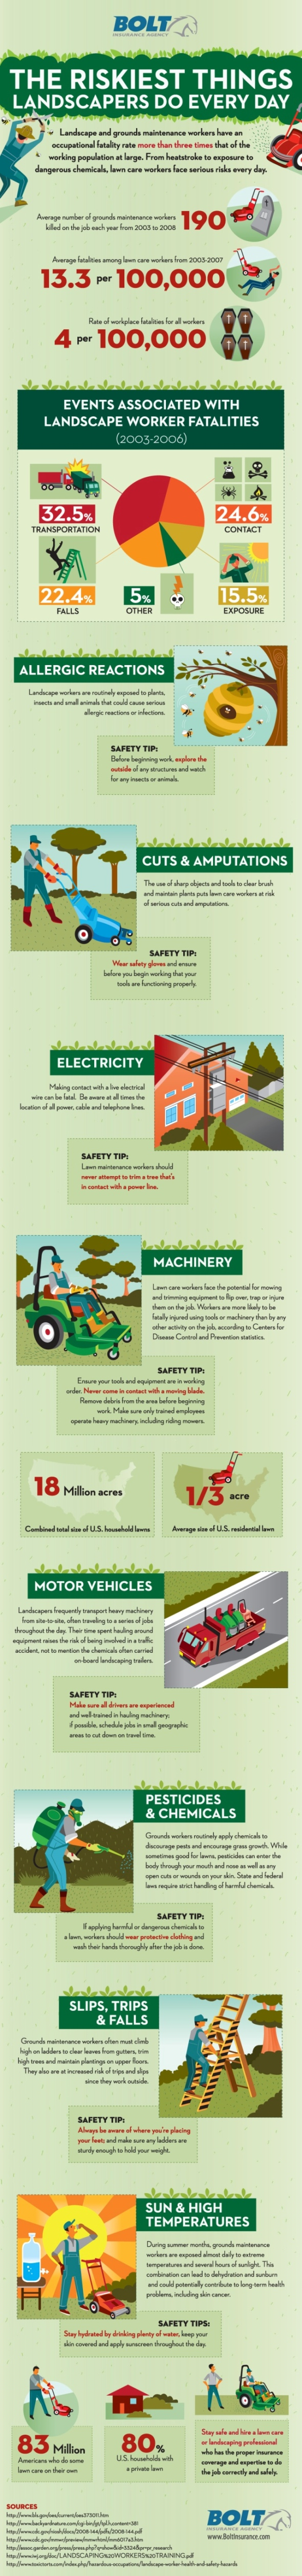 Risk factors for garden workers